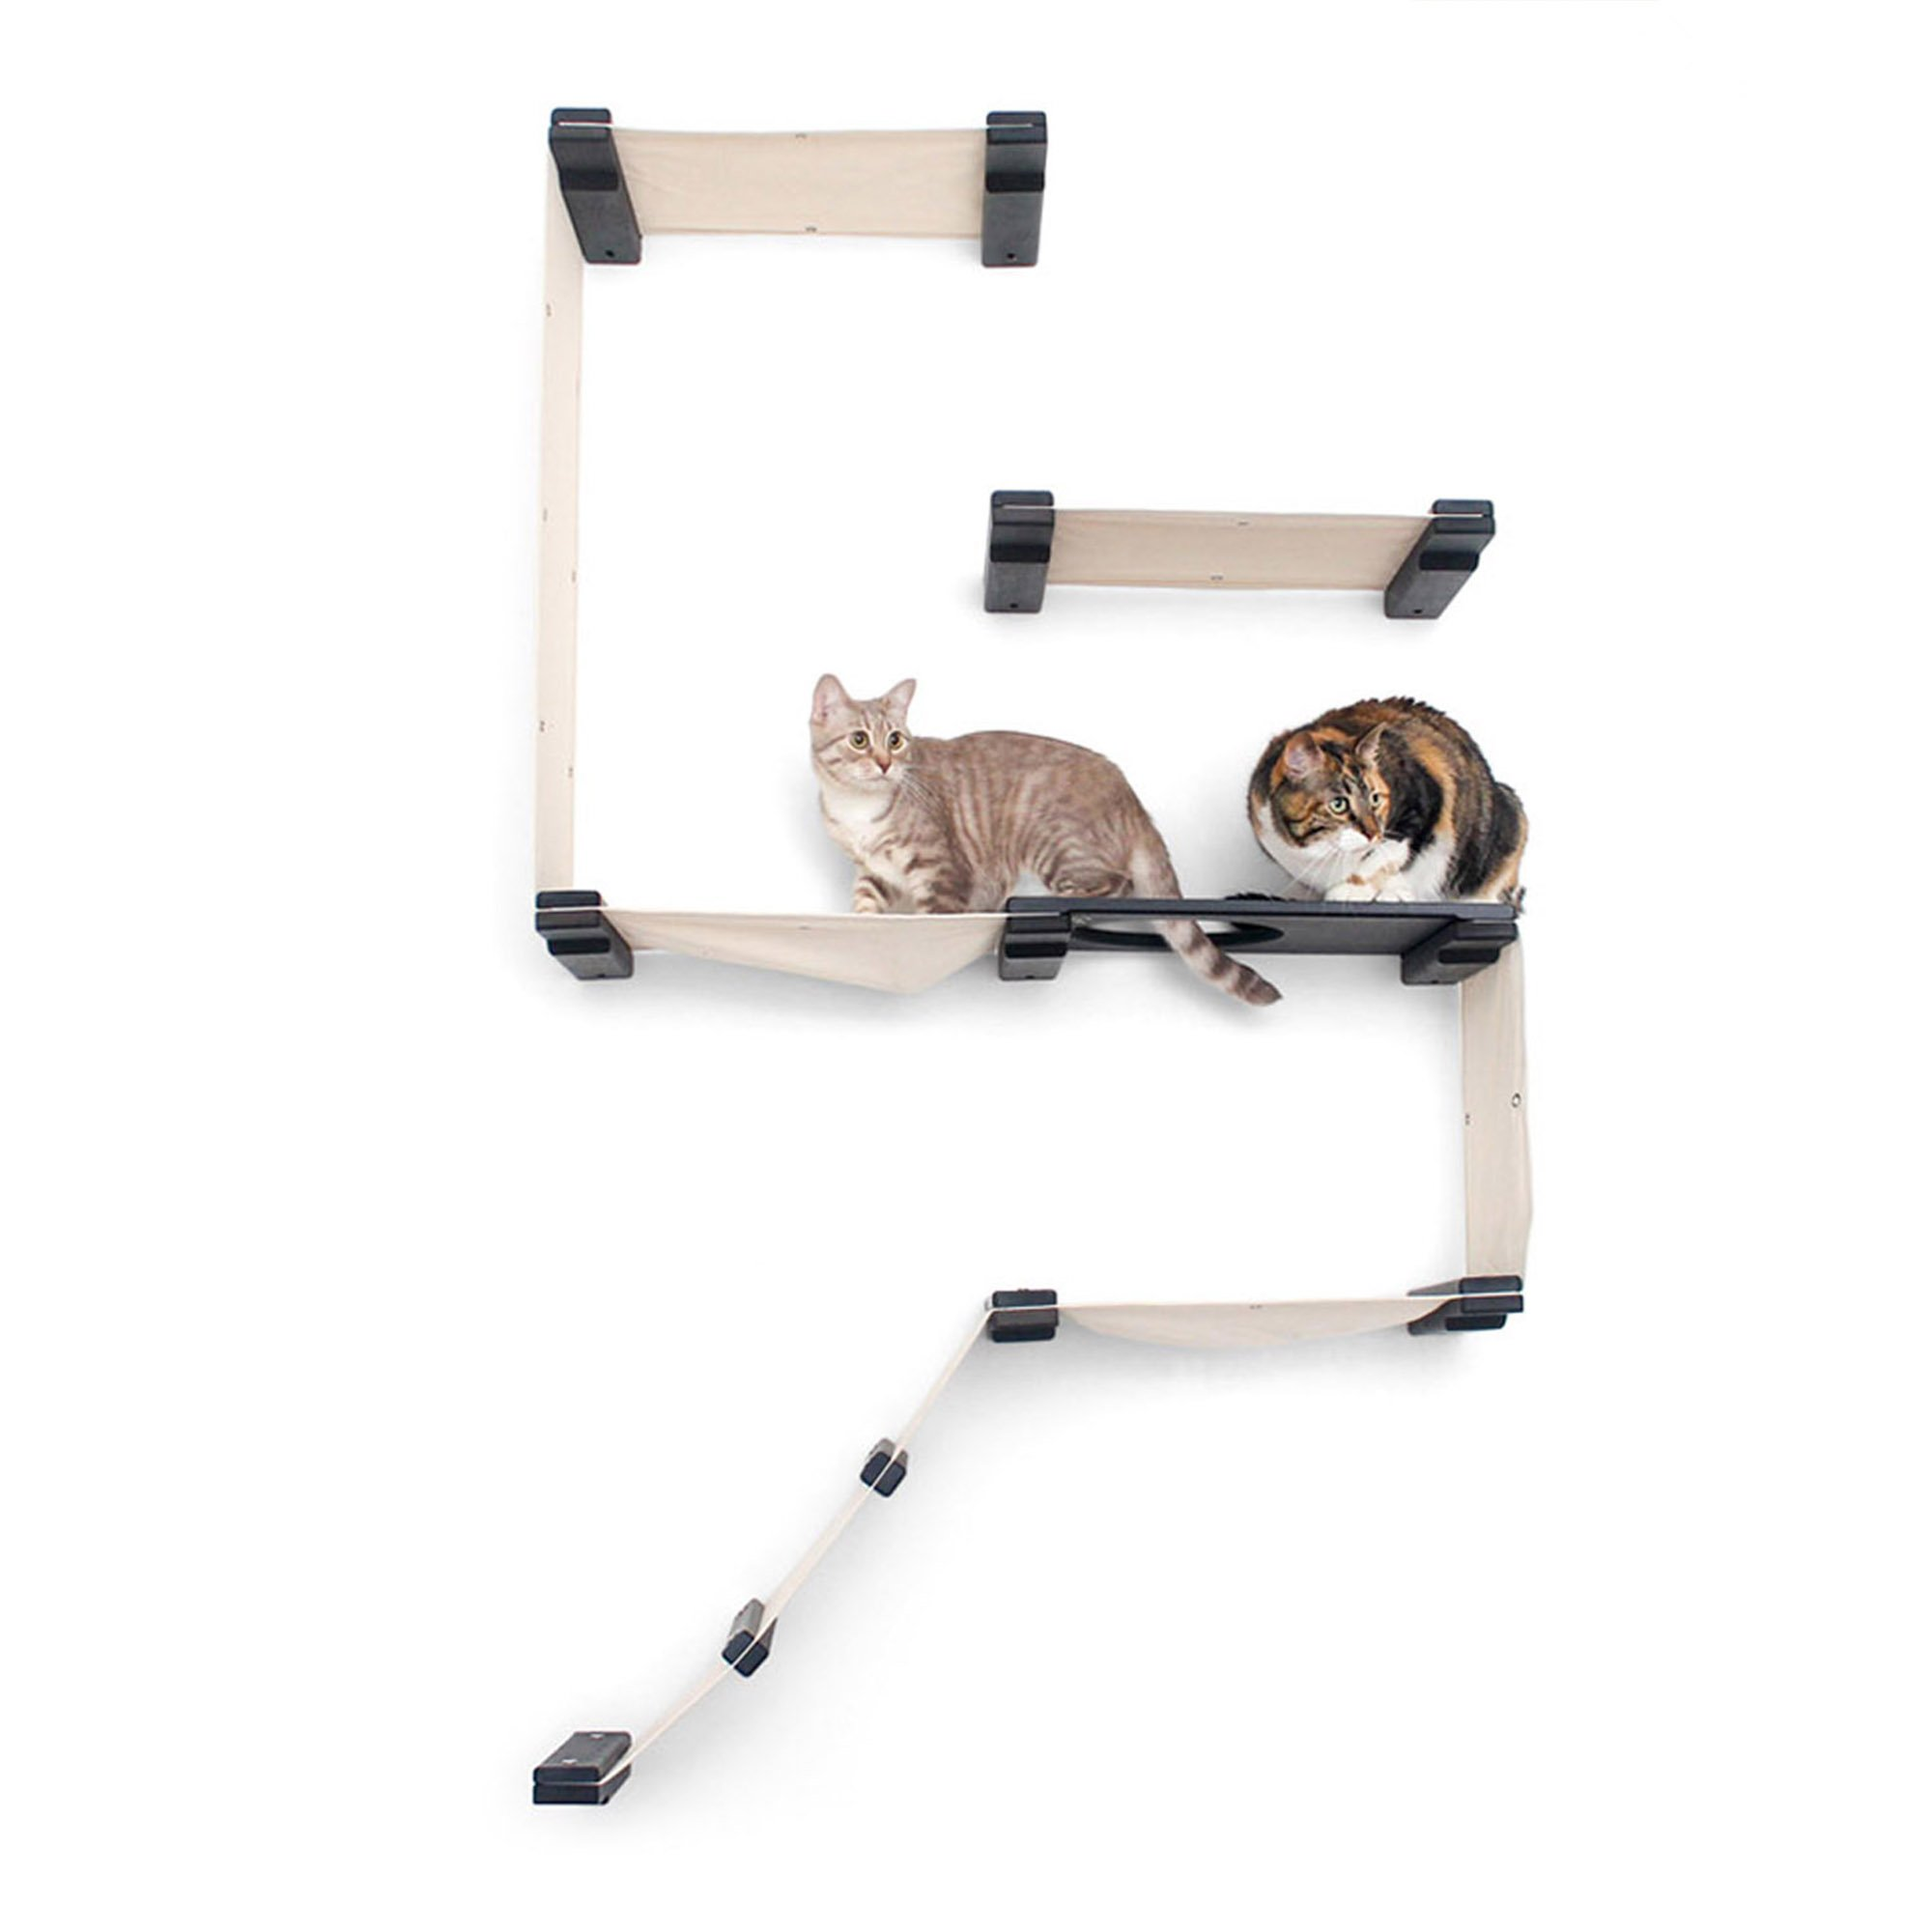 Catastrophicreations The Cat Mod Fort Lounging Hammocks For Cats In Onyx, 38 In W X 60 In H, 35 Lb